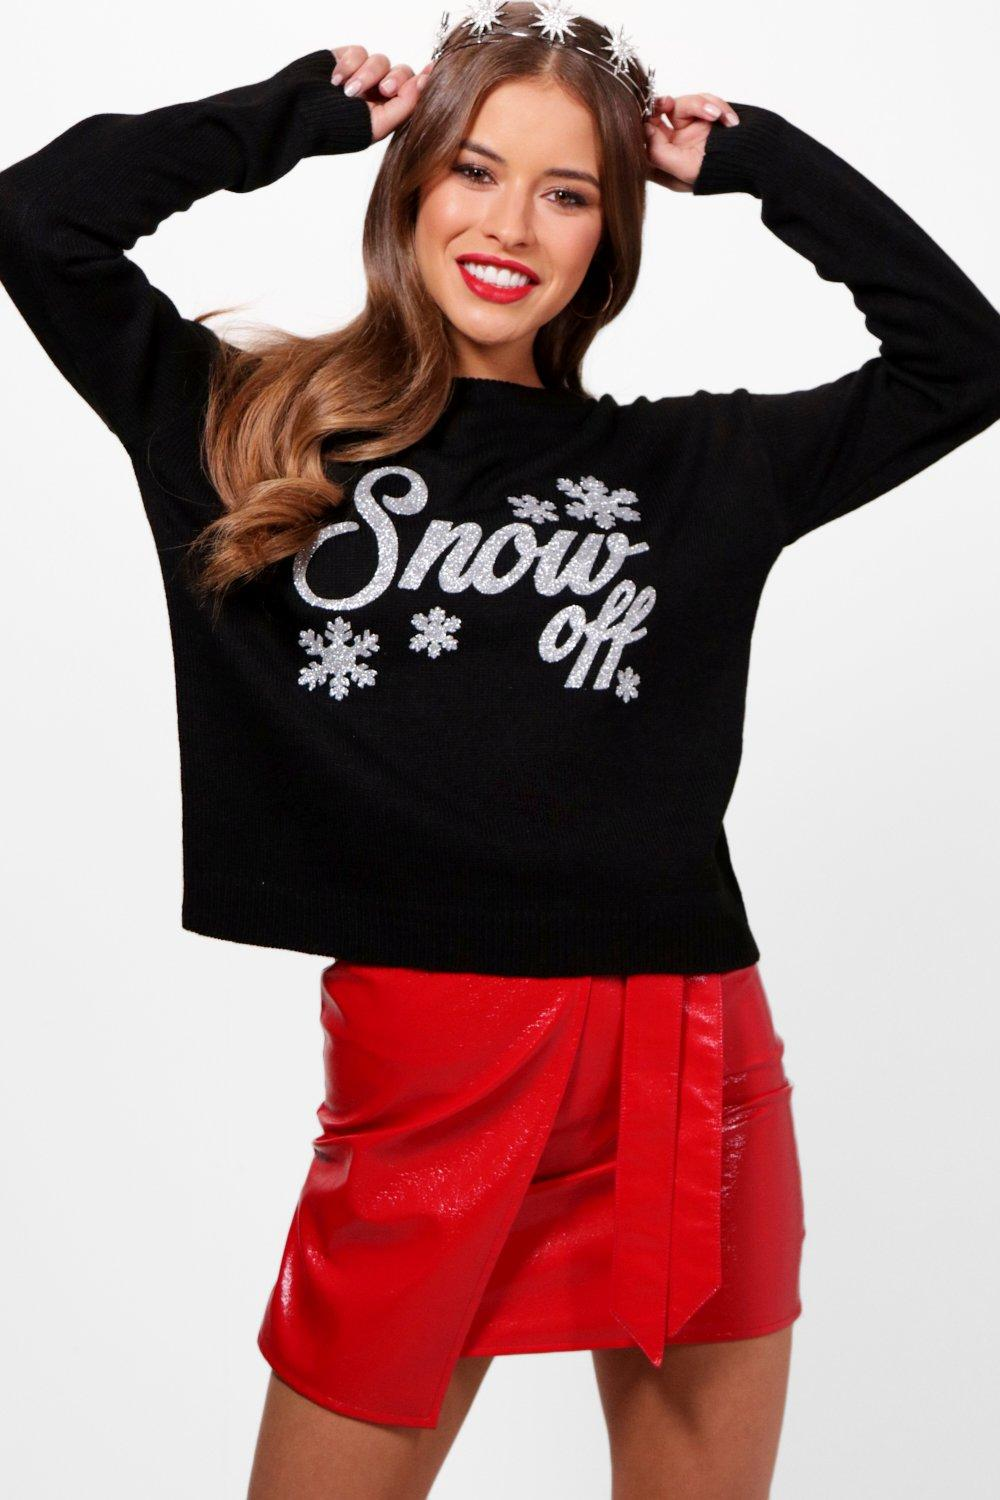 petite ellie snow off slogan christmas jumper | boohoo